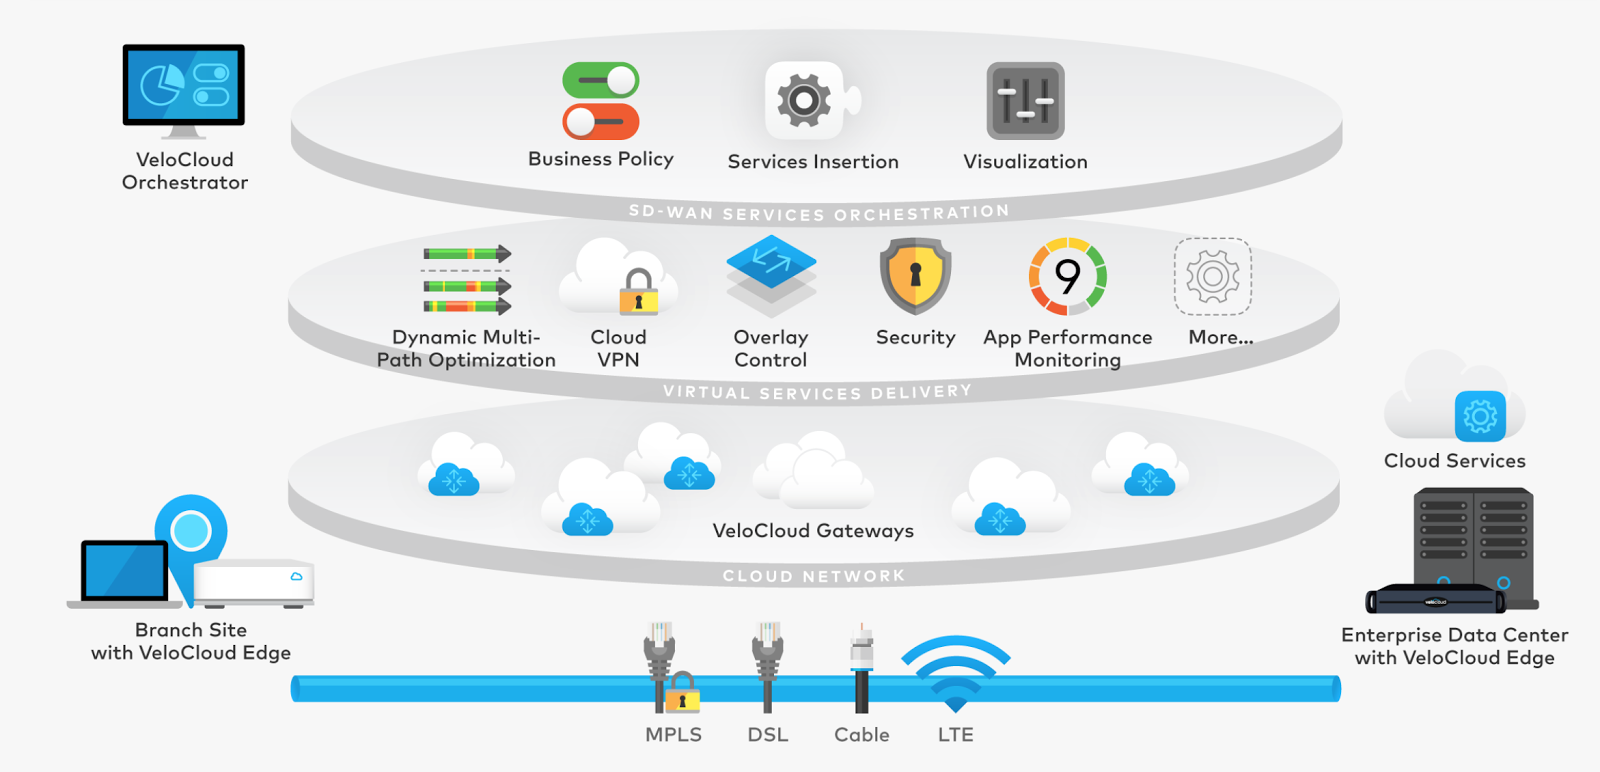 Fig 1.1- VeloCloud SD-WAN Architecture